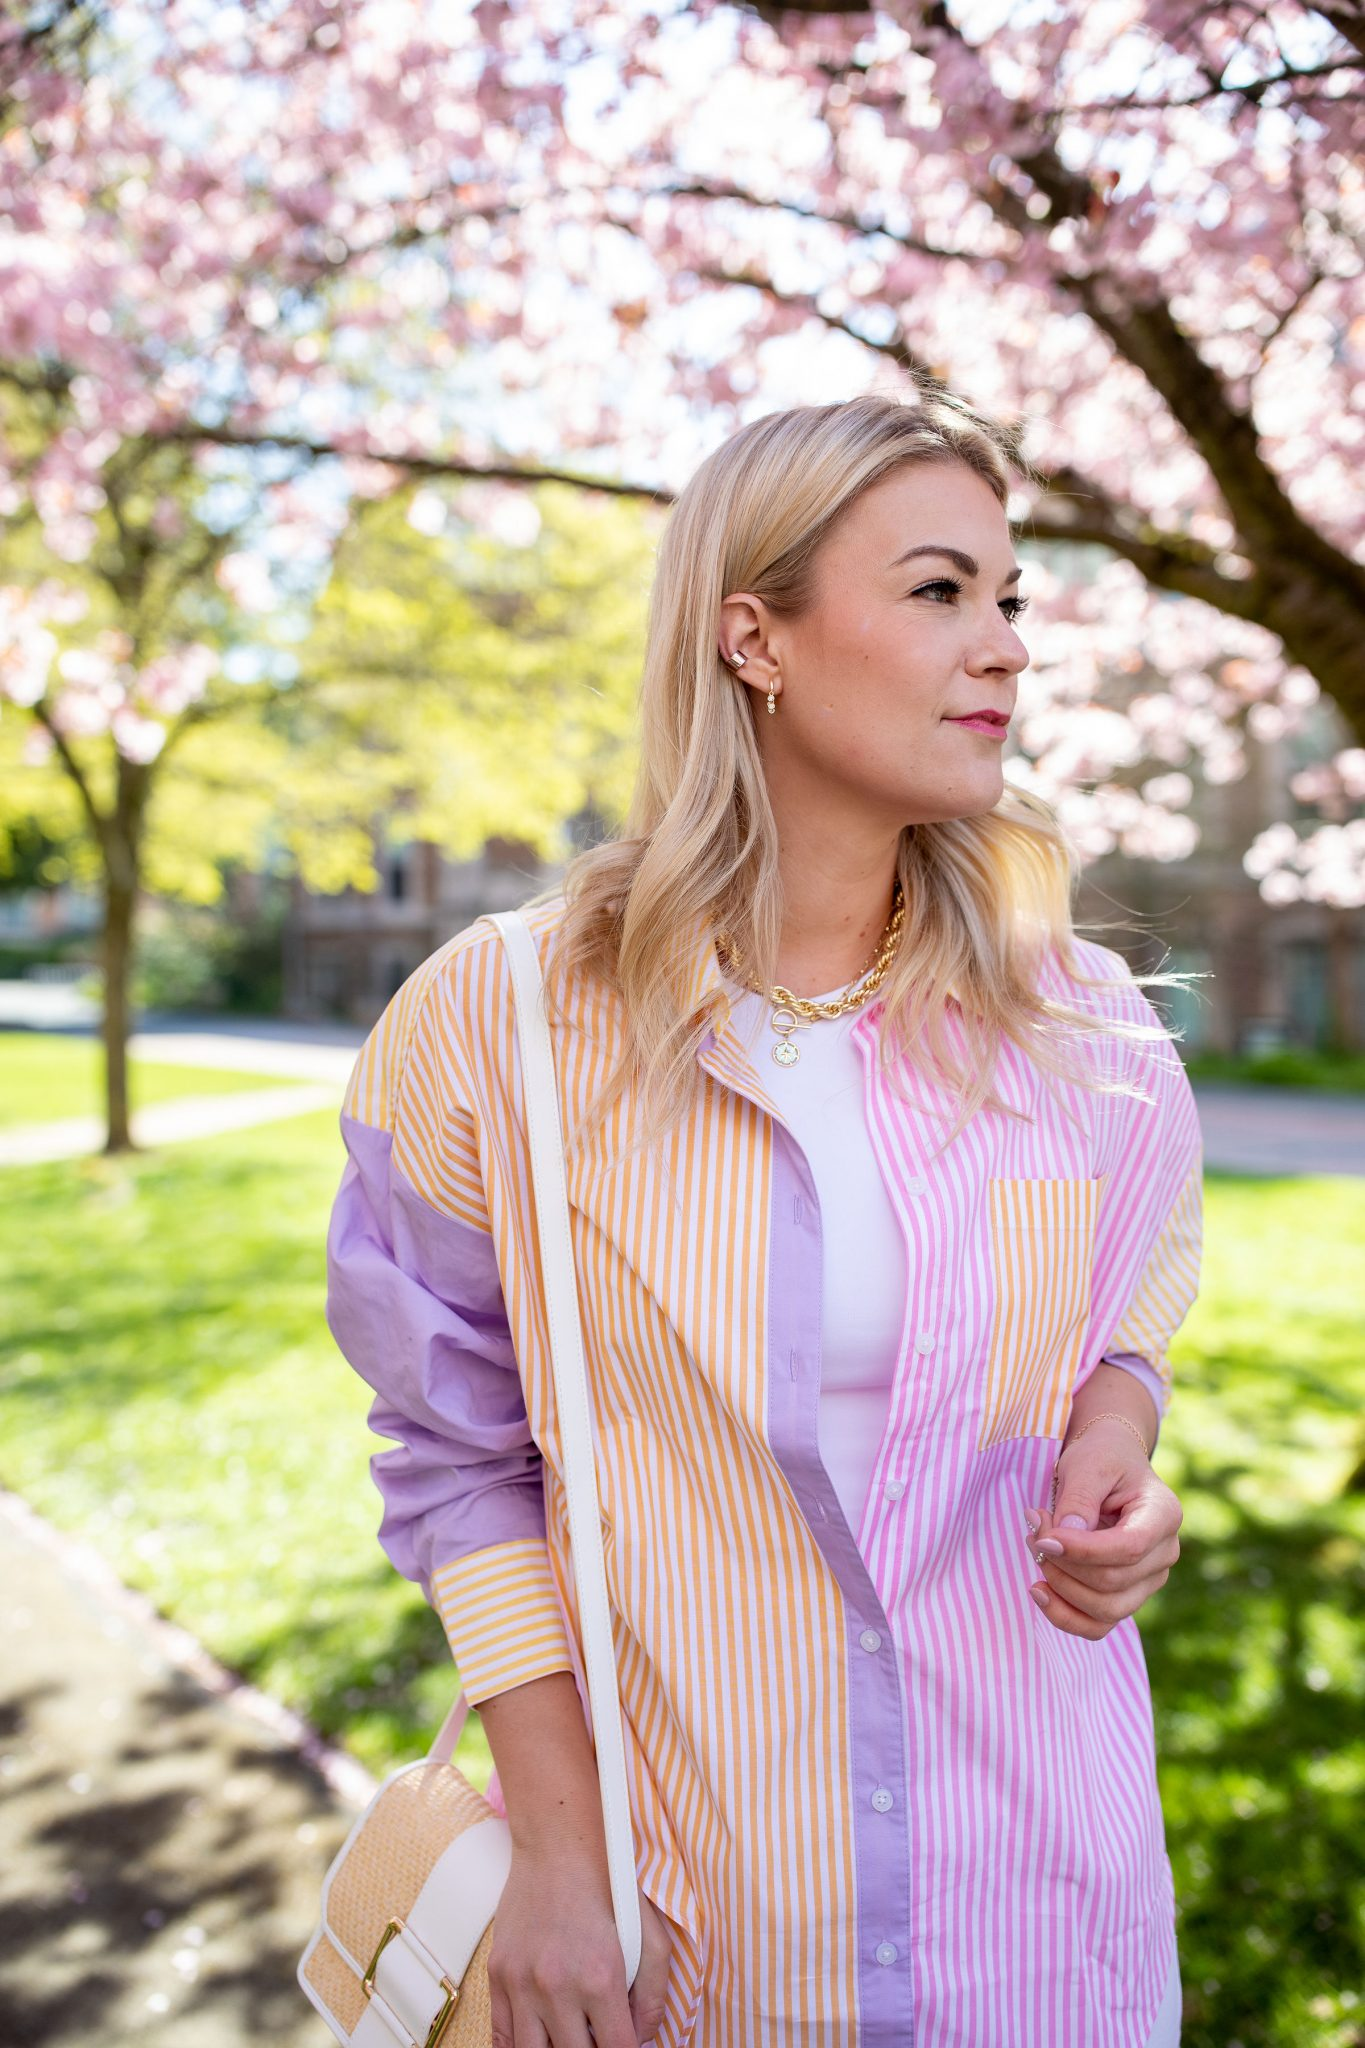 Purple Coat by popular Seattle tall fashion blog, Whit Wanders: image of a woman standing by a tree with pink cherry blossoms and wearing an oversized stripe shirt.